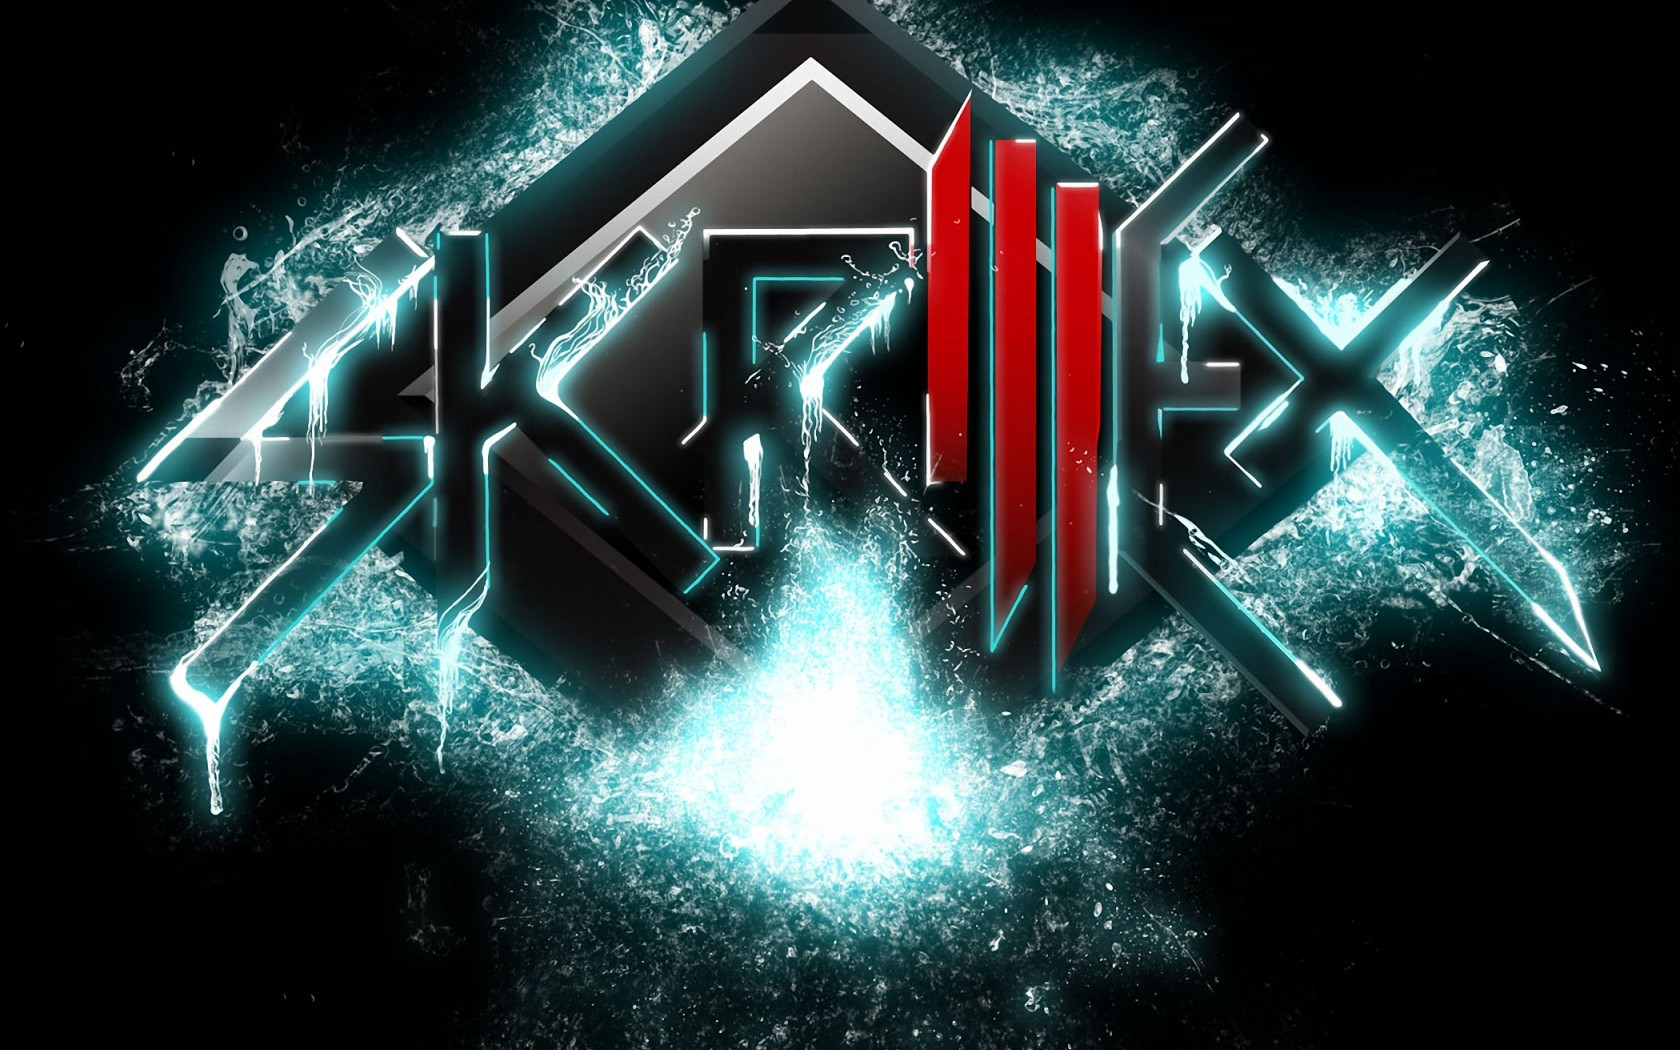 Skrillex Wallpapers High Quality Download Free